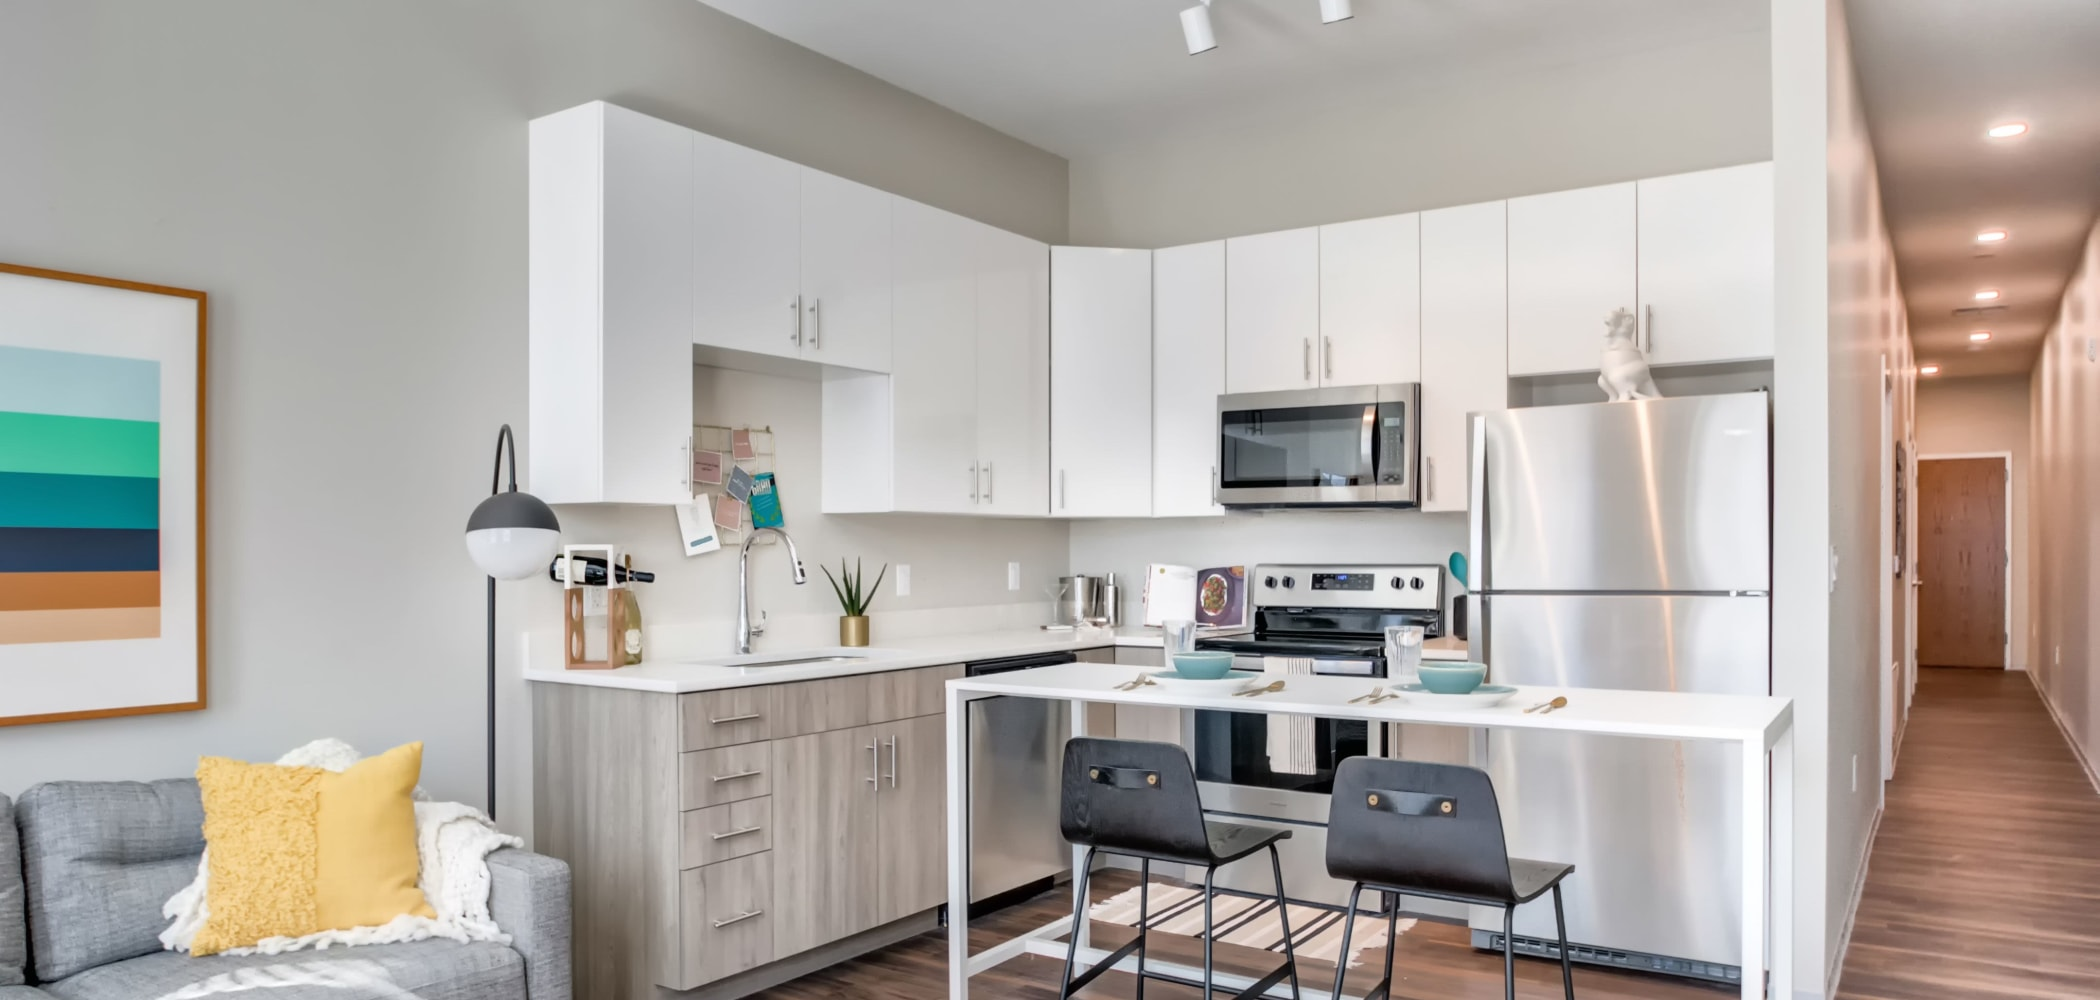 Fully equipped kitchen at The Link University City in Philadelphia, Pennsylvania